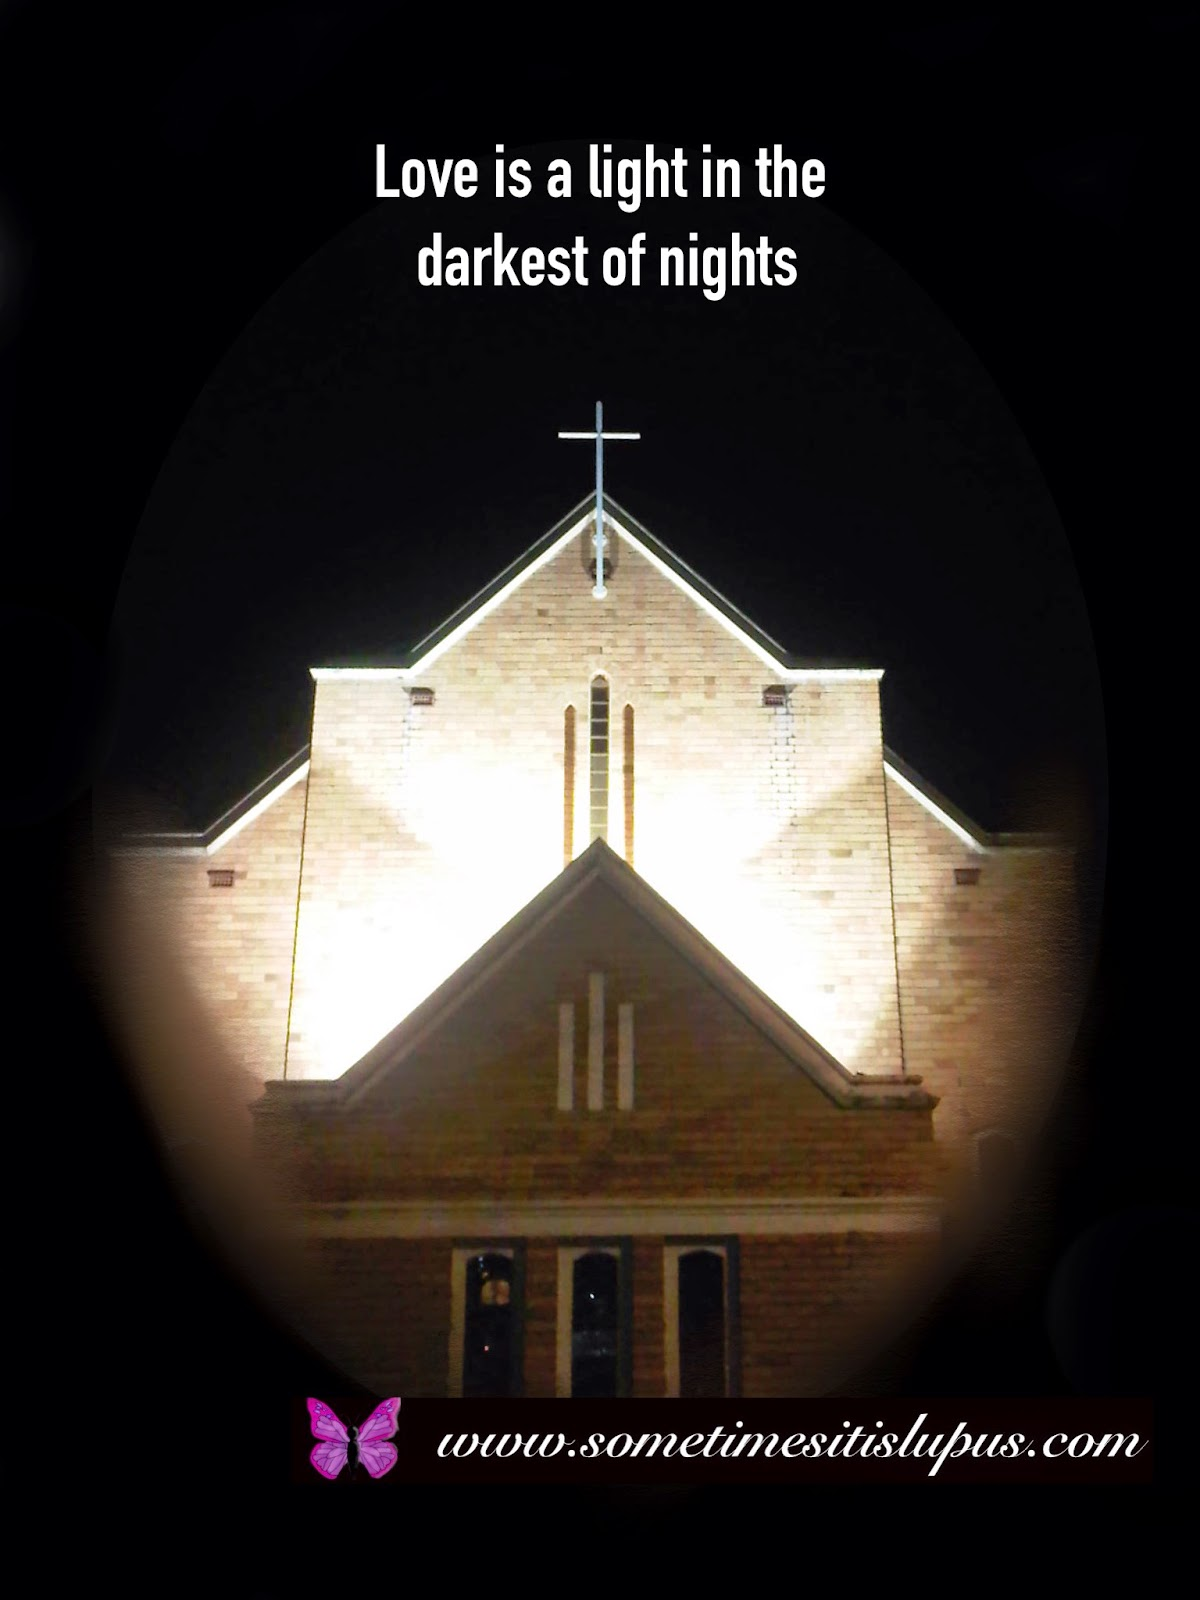 Image: Church lit up against night sky; Text: Love is a light in the darkest of nights